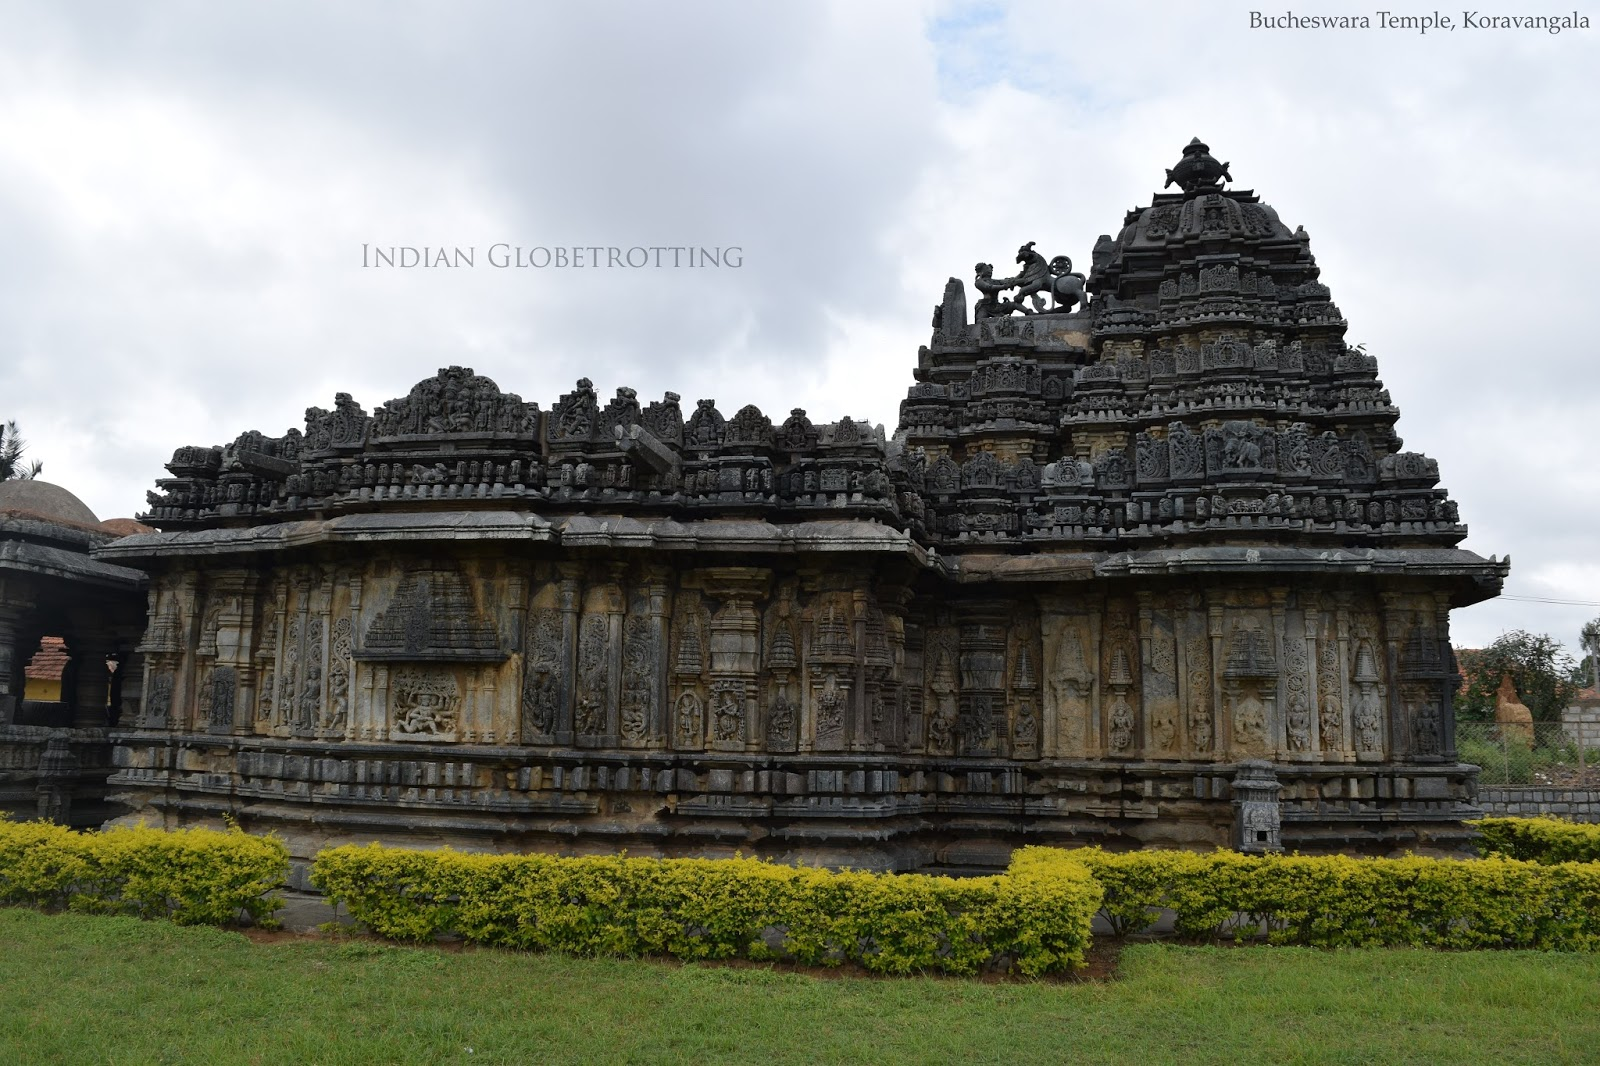 Side view of the Bucheswara temple in Koravnagala